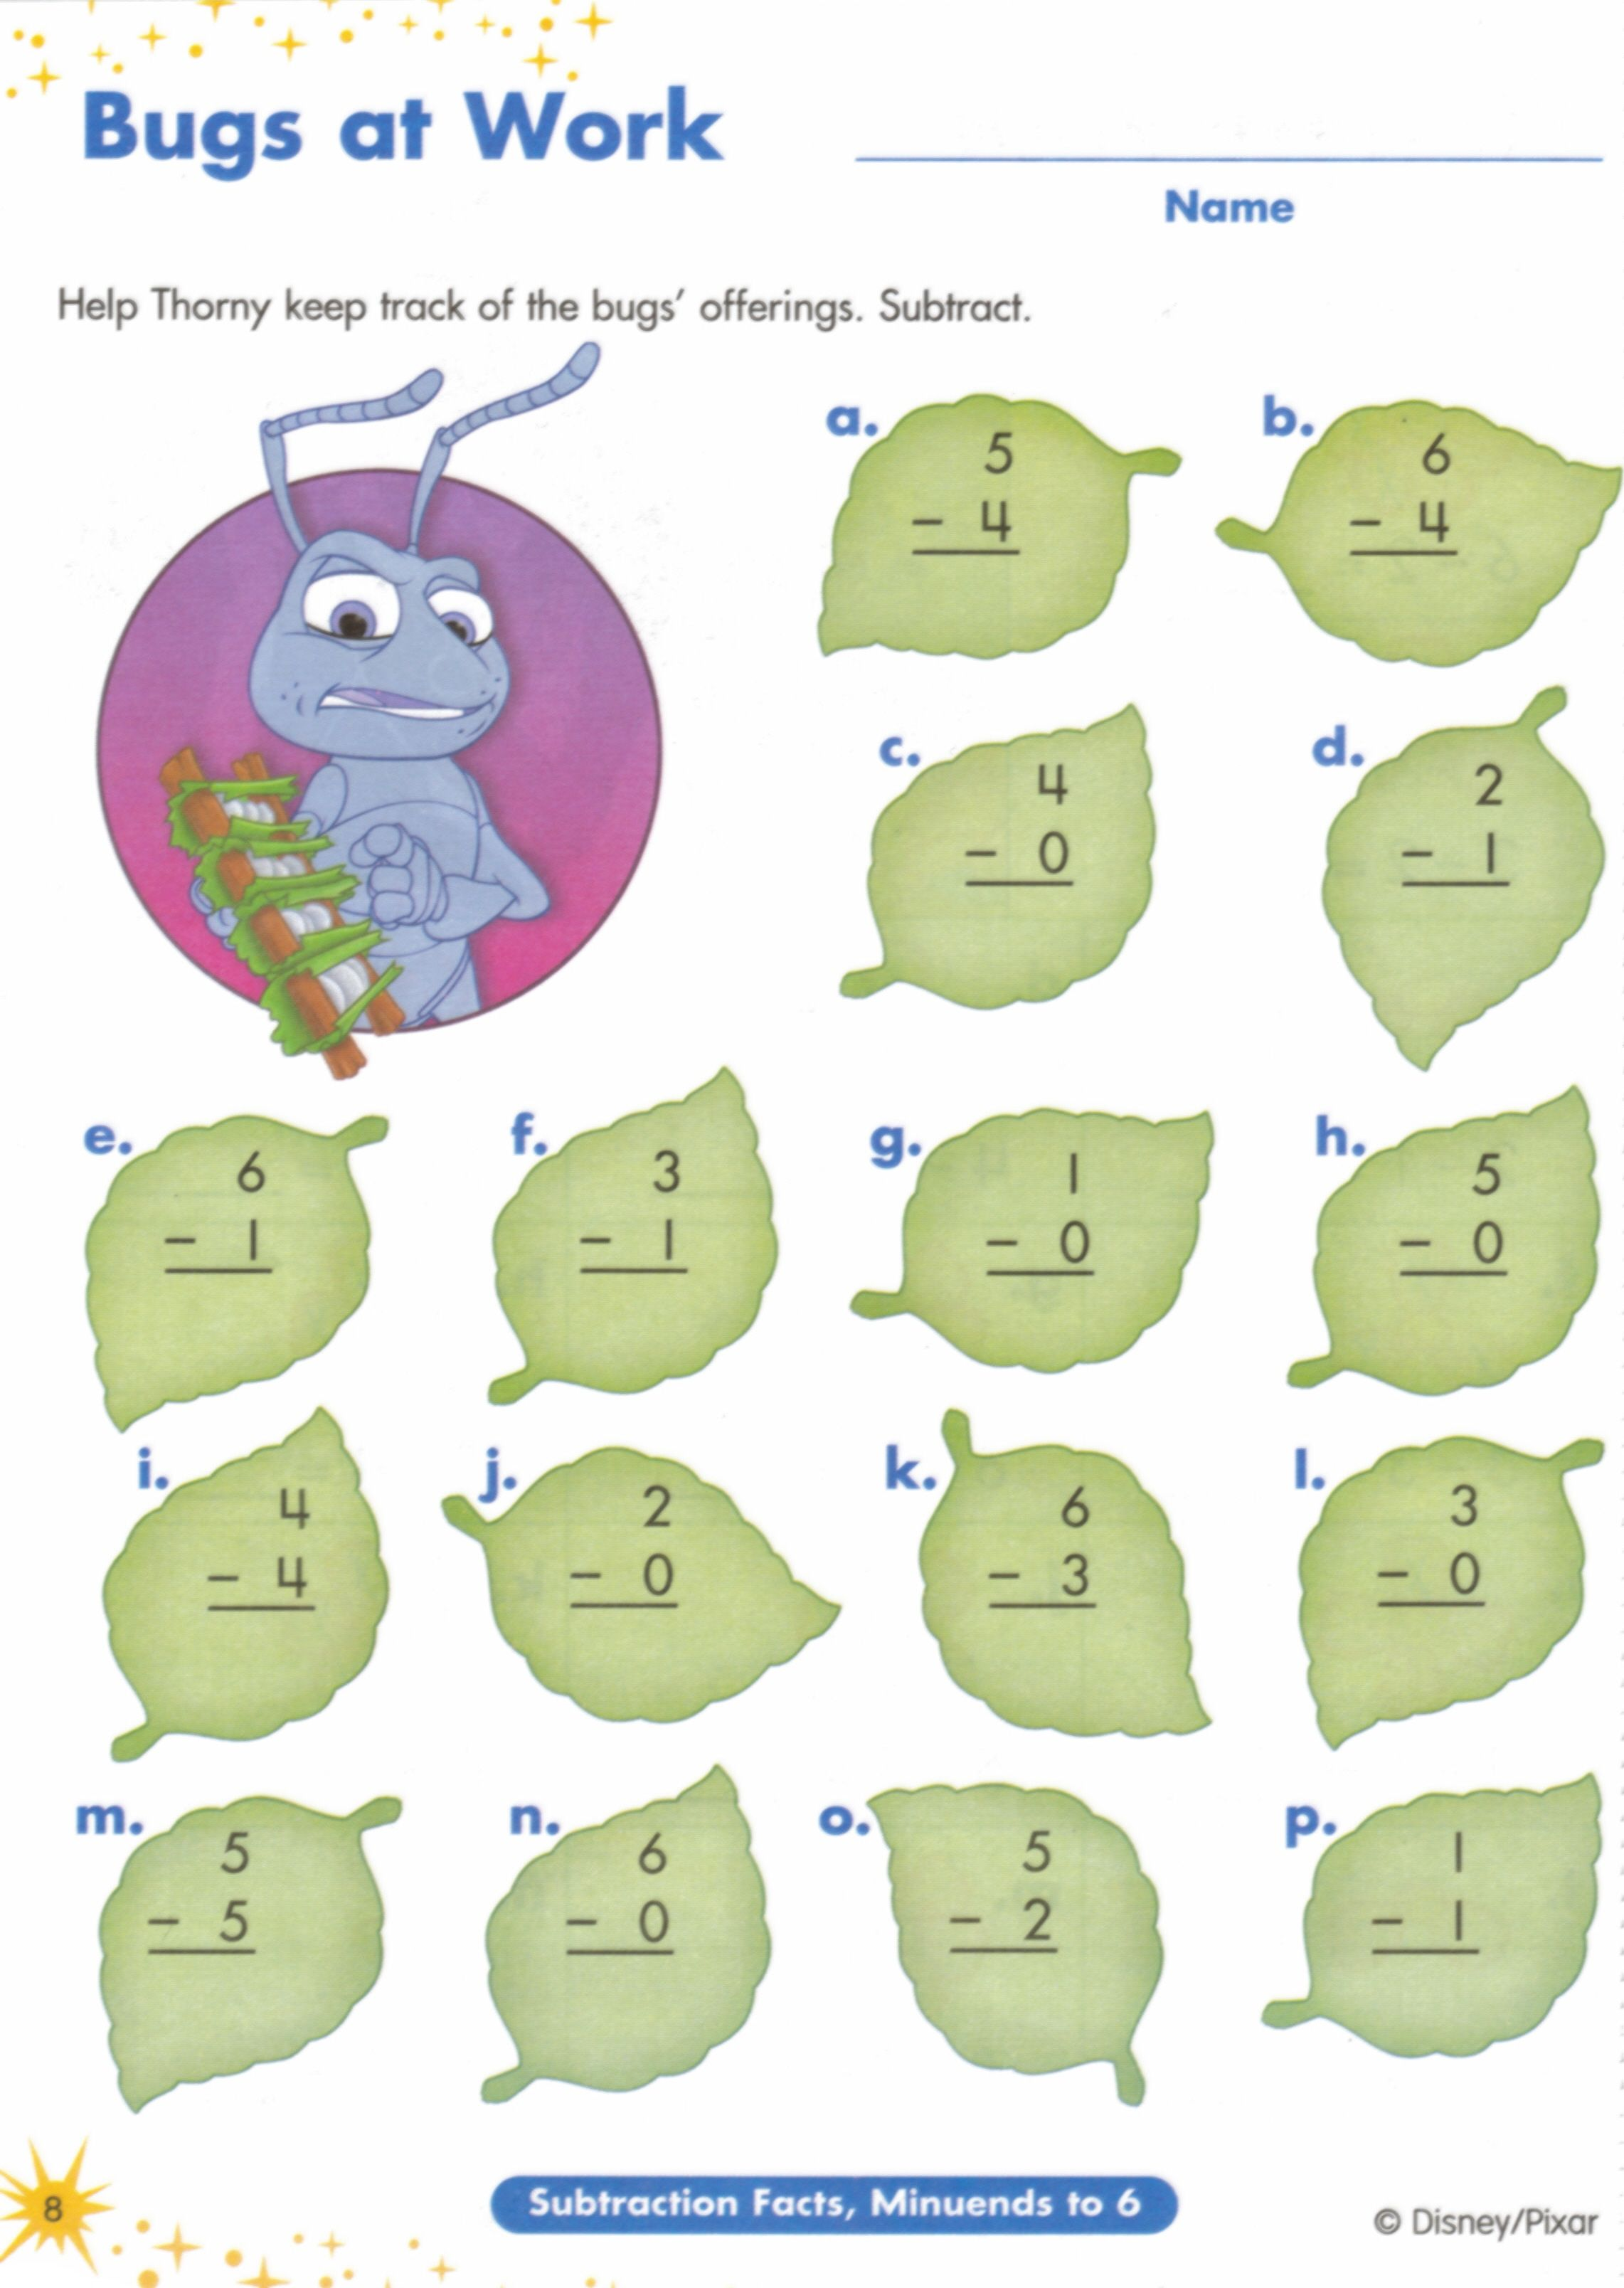 Weirdmailus  Marvelous  Images About Worksheets On Pinterest  Fun Facts For Kids  With Excellent  Images About Worksheets On Pinterest  Fun Facts For Kids Earth Day Worksheets And Jungles With Attractive Worksheet Methods Also Alphabet Worksheets For  Year Olds In Addition Two Digit Subtraction With Regrouping Worksheets And Naming Alkanes Worksheet  Answers As Well As Comprehension Worksheets For Grade  Free Additionally Preventing Infectious Diseases Worksheet From Pinterestcom With Weirdmailus  Excellent  Images About Worksheets On Pinterest  Fun Facts For Kids  With Attractive  Images About Worksheets On Pinterest  Fun Facts For Kids Earth Day Worksheets And Jungles And Marvelous Worksheet Methods Also Alphabet Worksheets For  Year Olds In Addition Two Digit Subtraction With Regrouping Worksheets From Pinterestcom